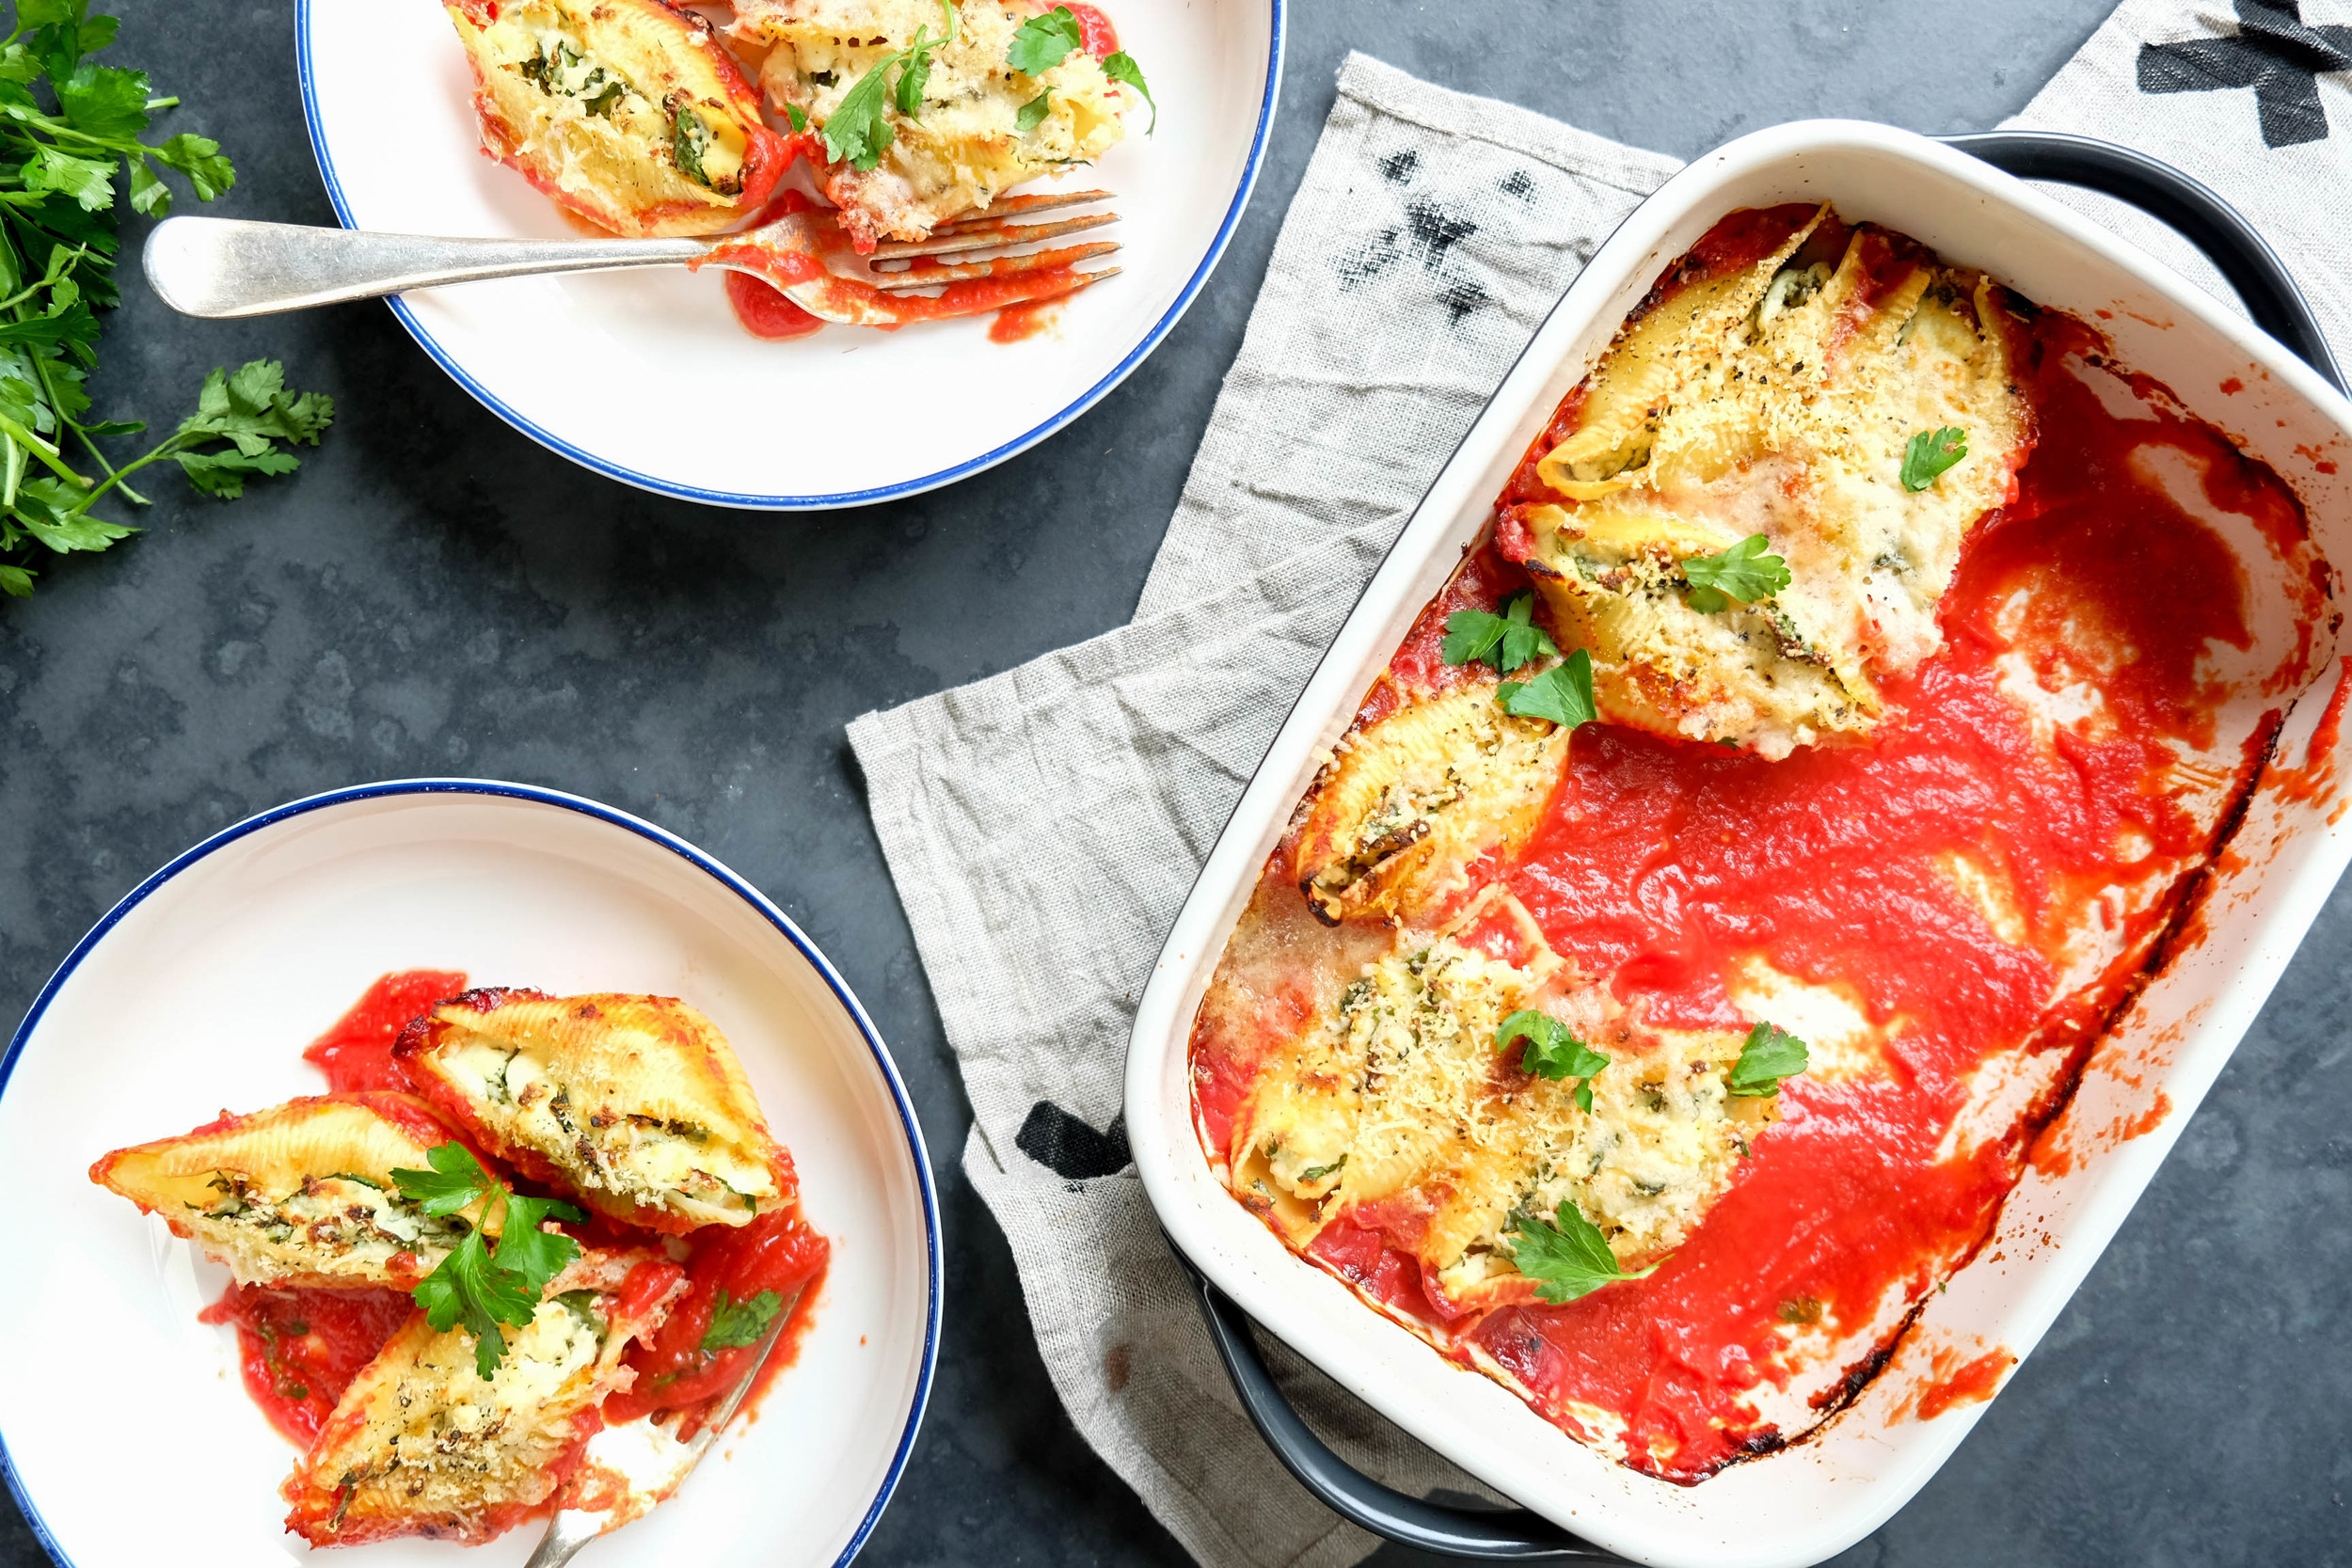 Baked spinach and ricotta shells